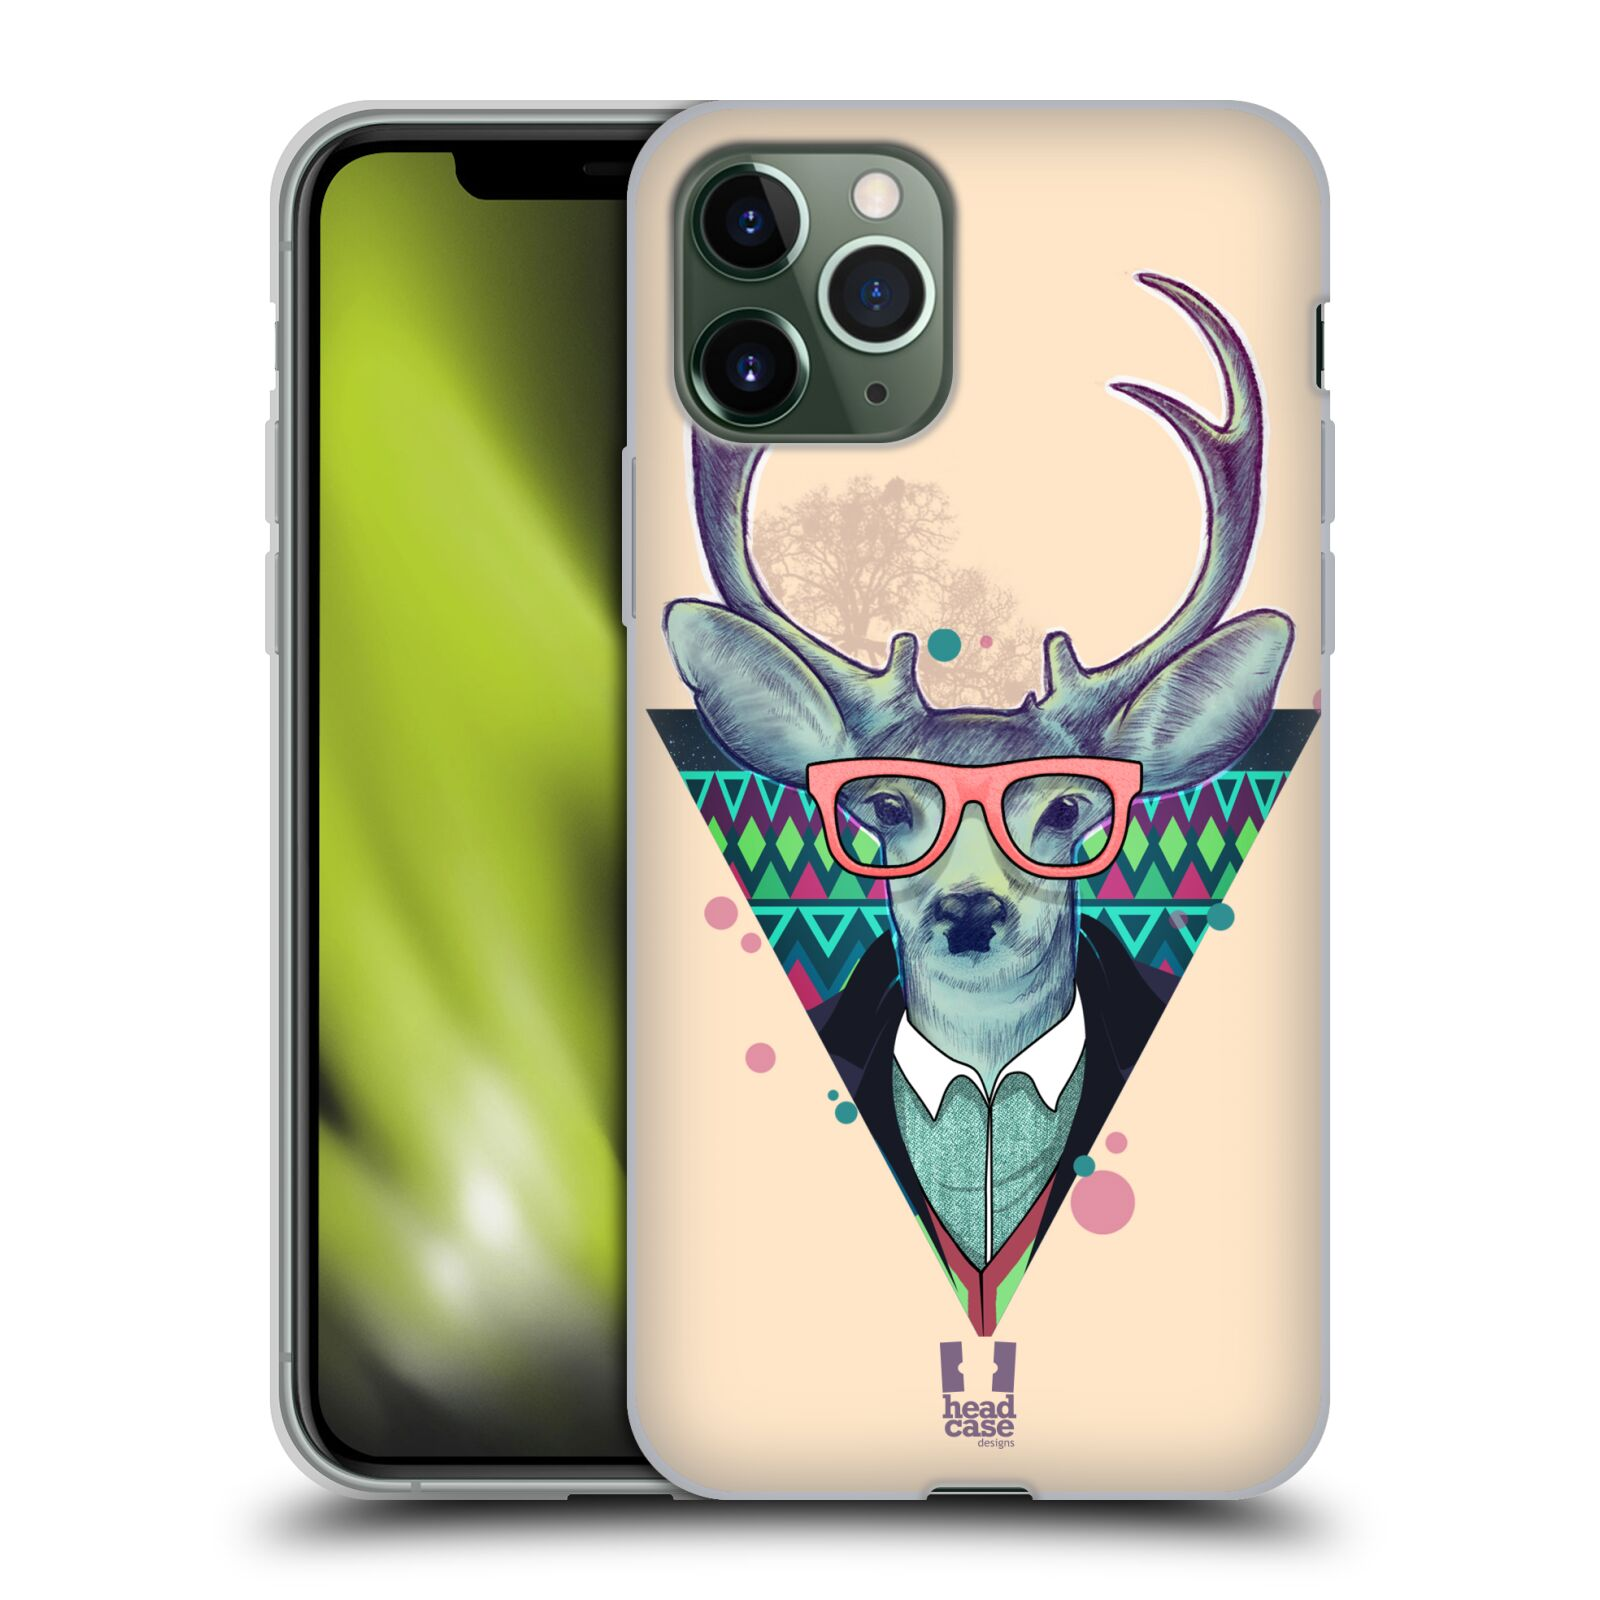 gucci iphone case 8 plus - Silikonové pouzdro na mobil Apple iPhone 11 Pro - Head Case - HIPSTR JELEN